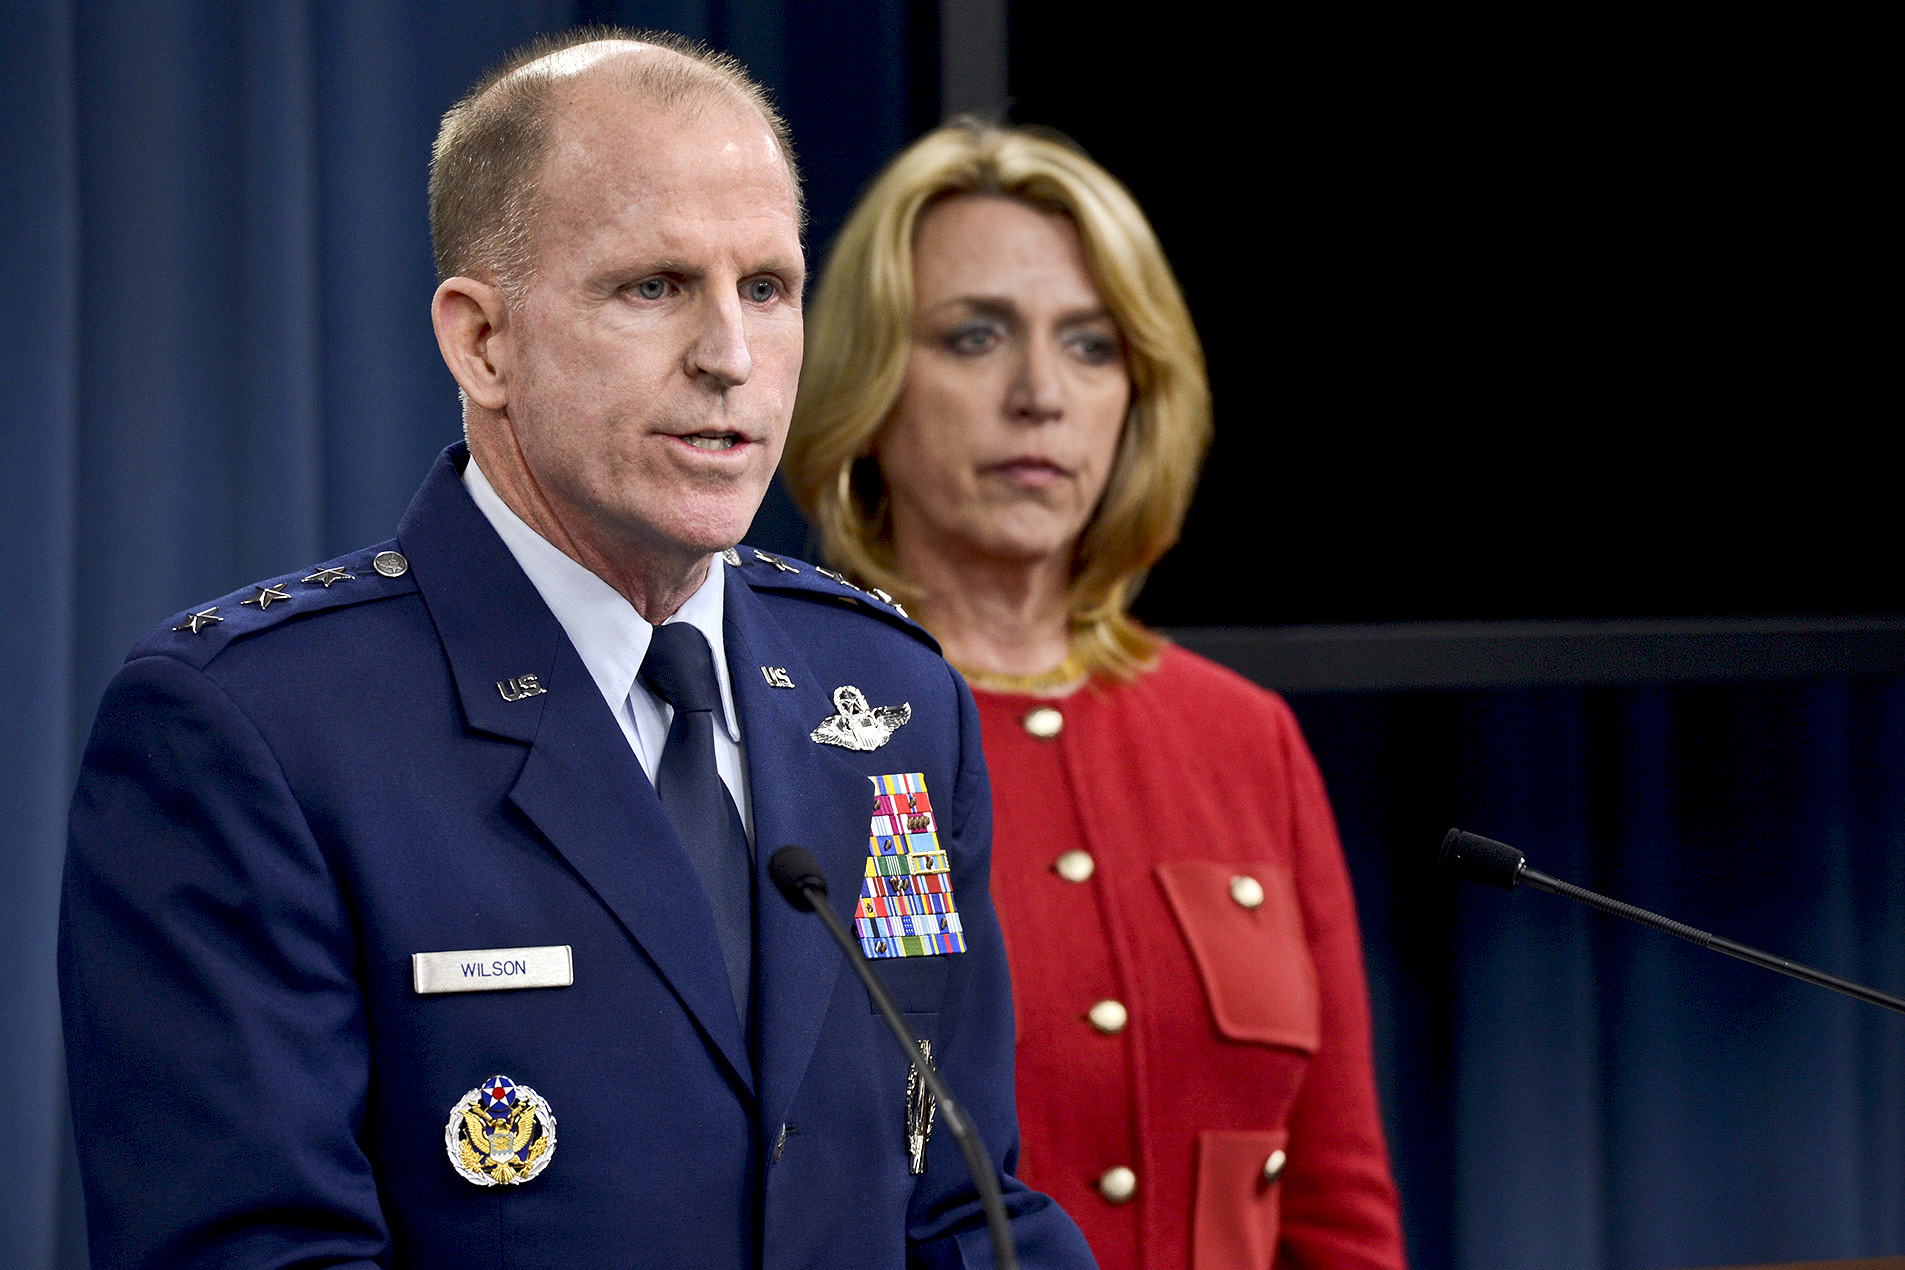 Lieut. General Stephen Wilson, chief of the Air Force's Global Strike Command, and Secretary of the Air Force Deborah Lee James, detail what happened at Malmstrom.